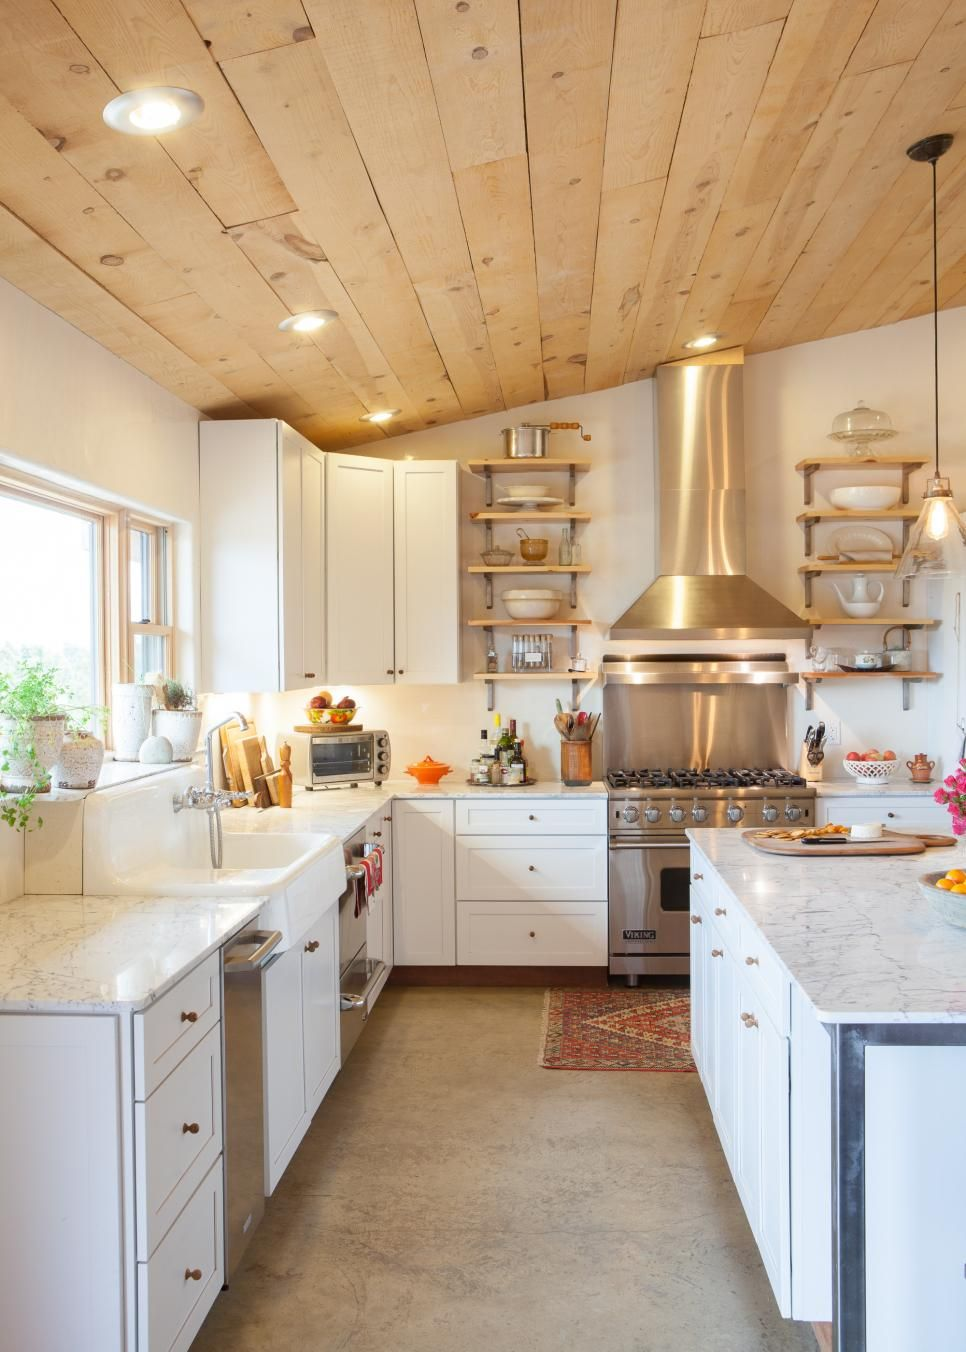 French Country Kitchen With Natural Wood Plank Ceiling Concrete Kitchen Floor Kitchen Flooring Wood Plank Ceiling